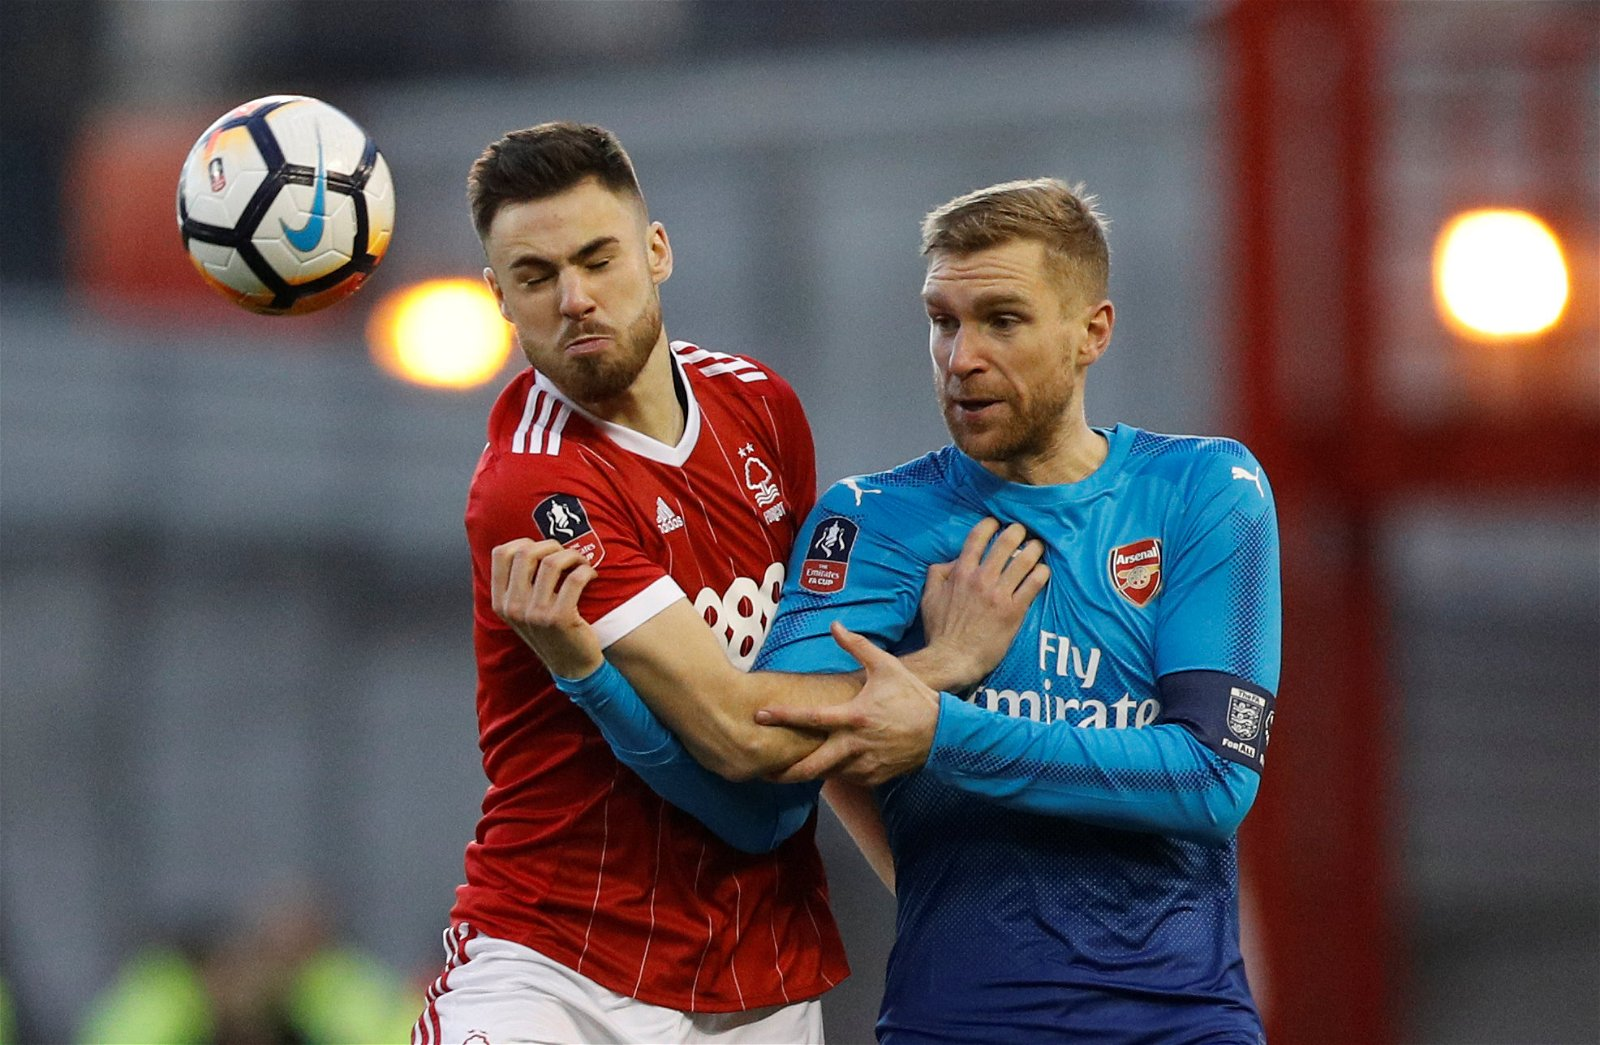 Per Mertesacker battles Ben Brereton for the ball